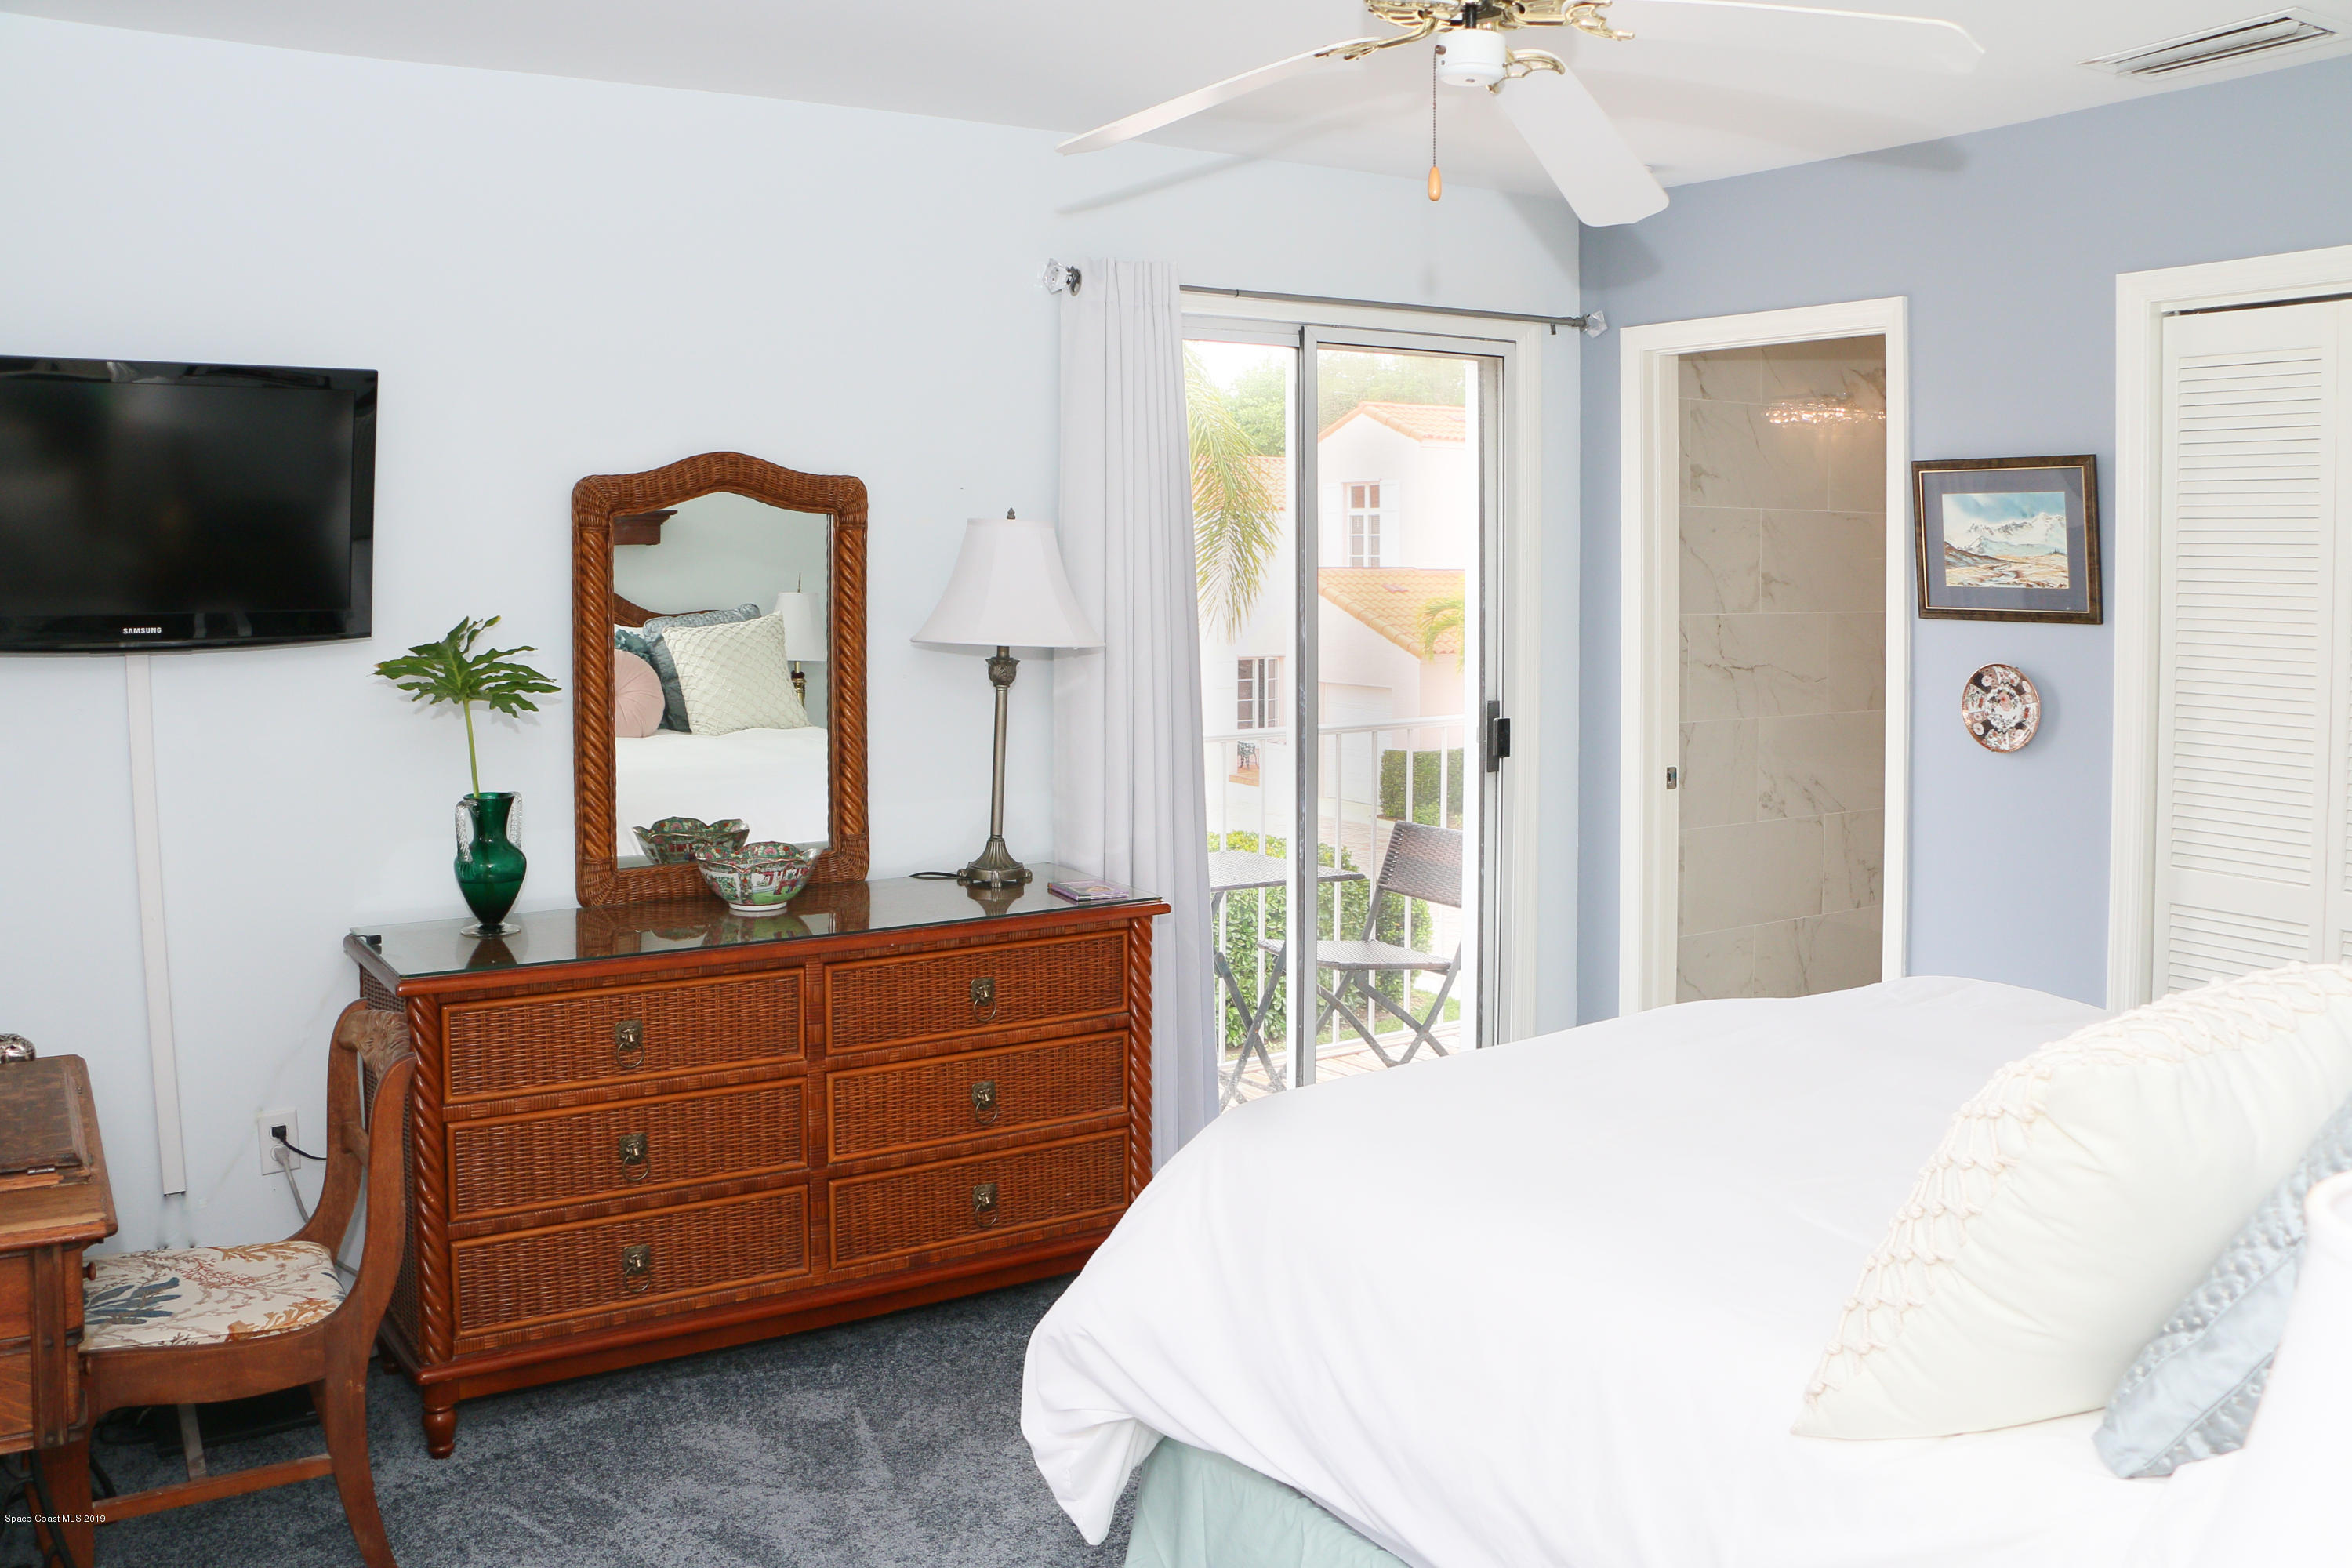 Additional photo for property listing at 4838 Wood Duck Vero Beach, Florida 32967 United States